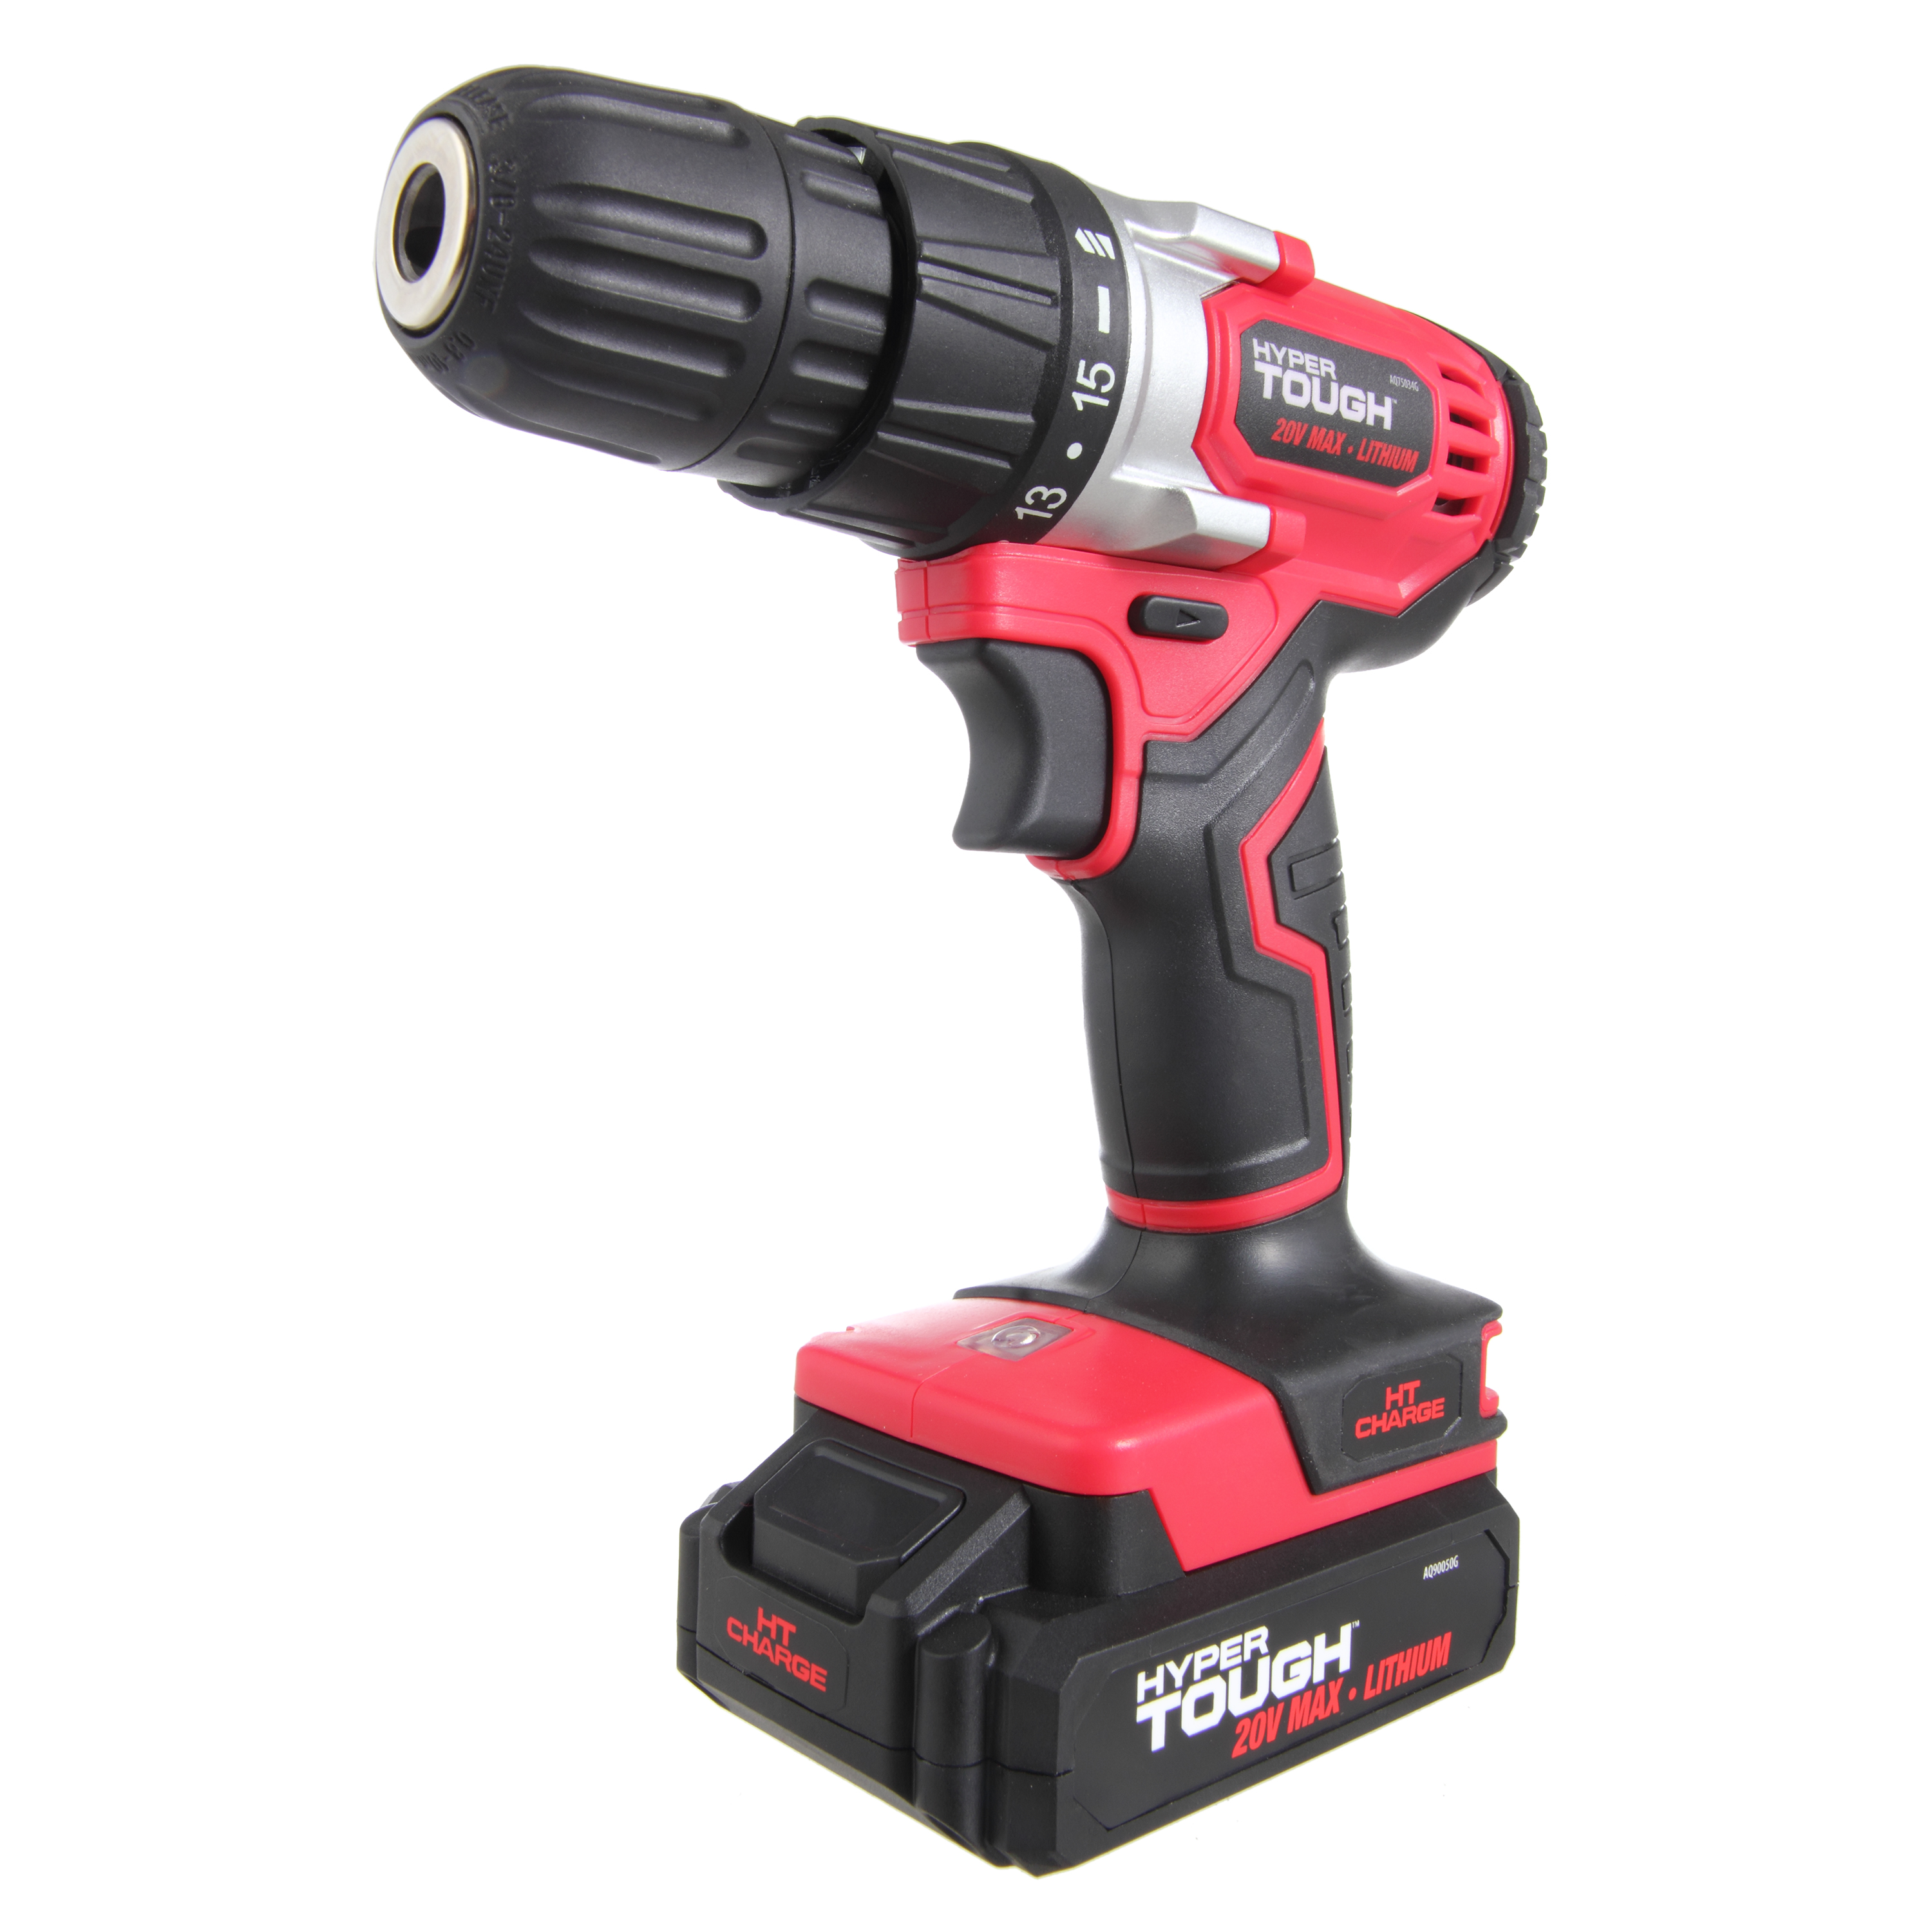 Hyper Tough AQ75034G, HT Charge 20V MAX Lithium Ion Cordless Drill   Driver by Test Rite Intl